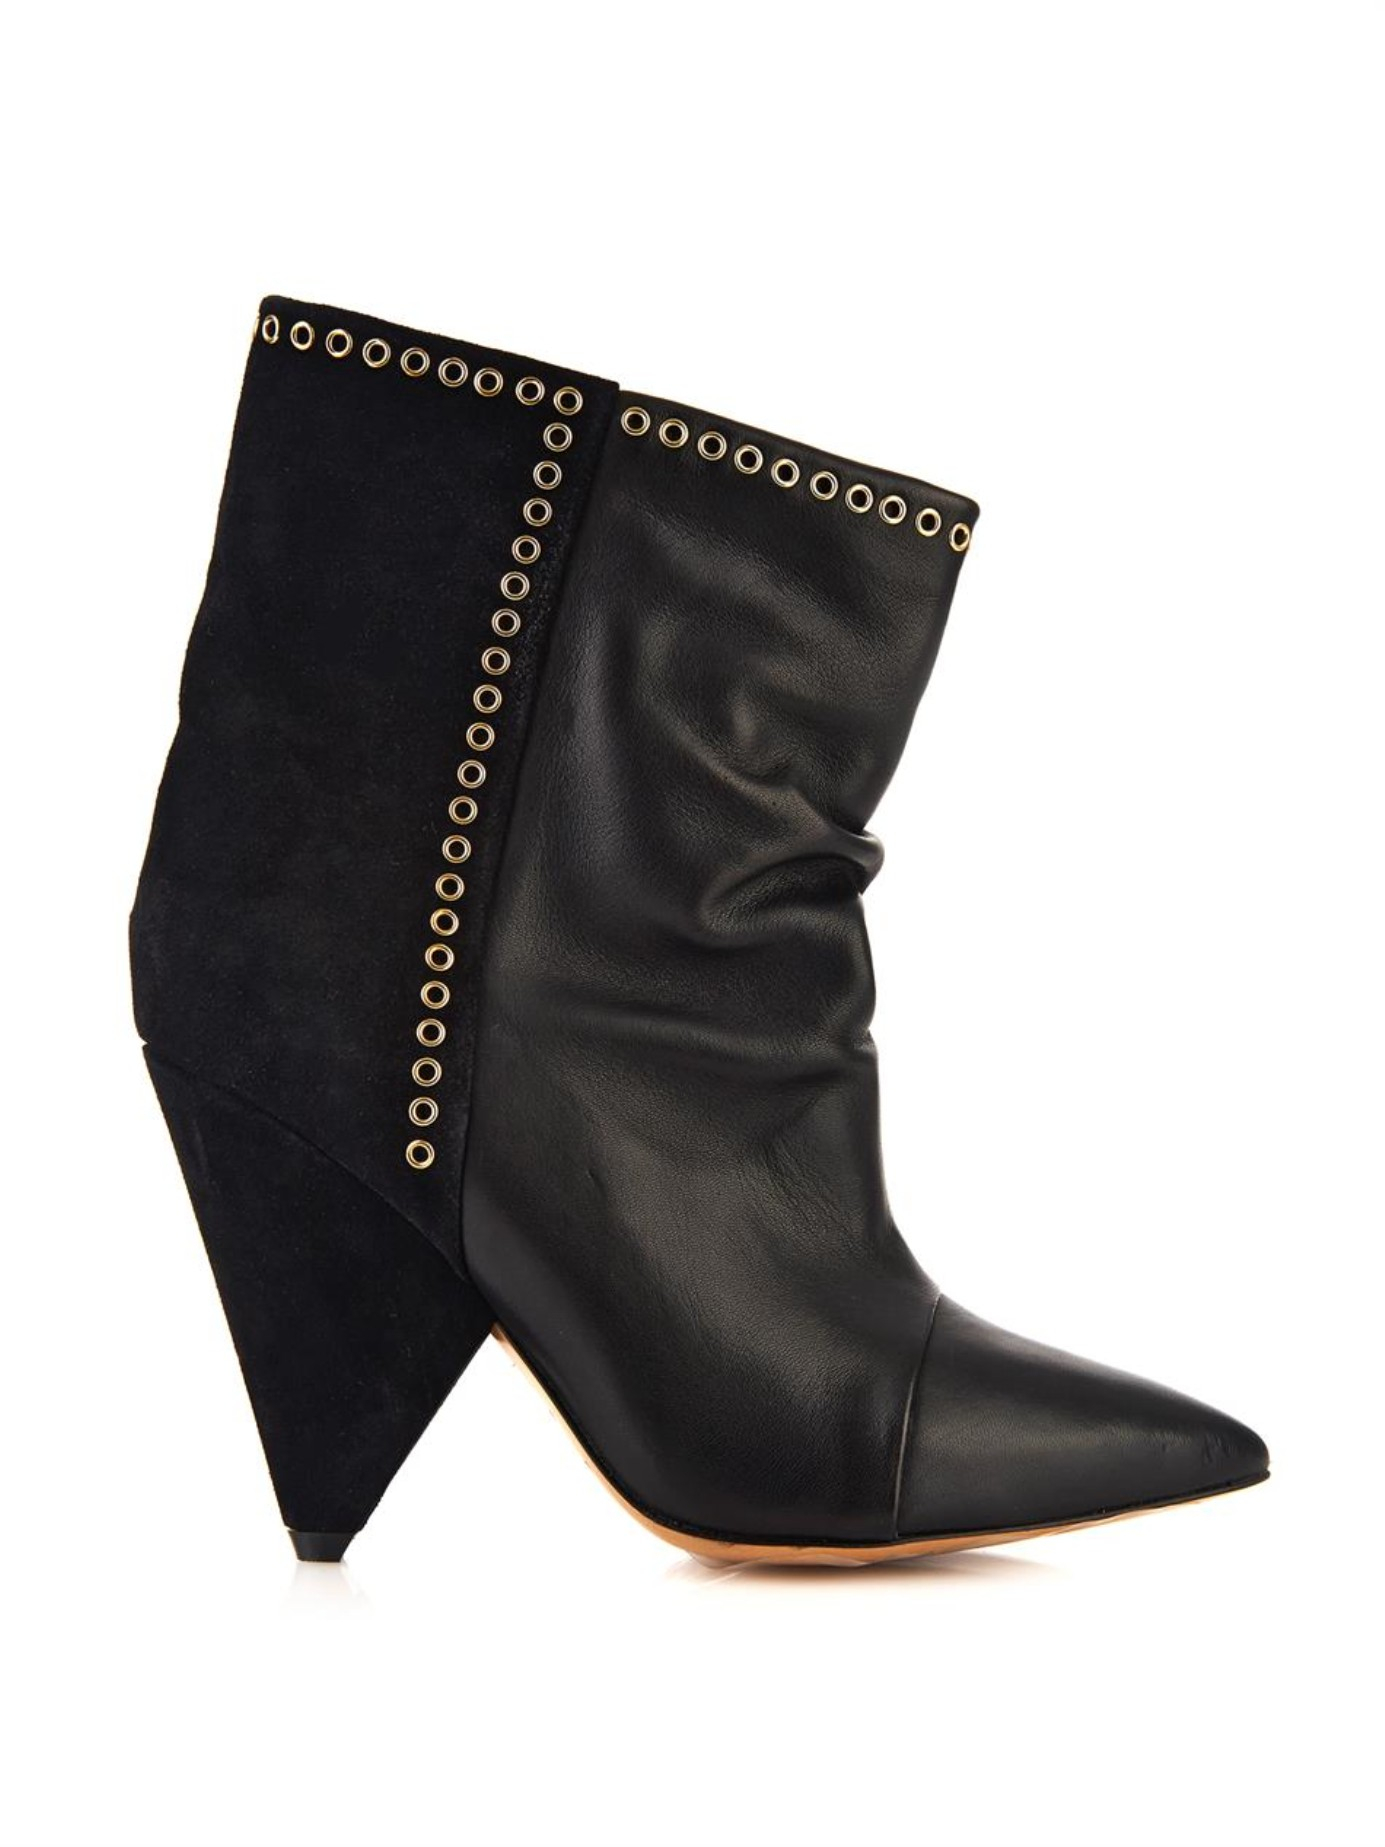 Isabel marant Lance Suede And Leather Ankle Boots in Black | Lyst